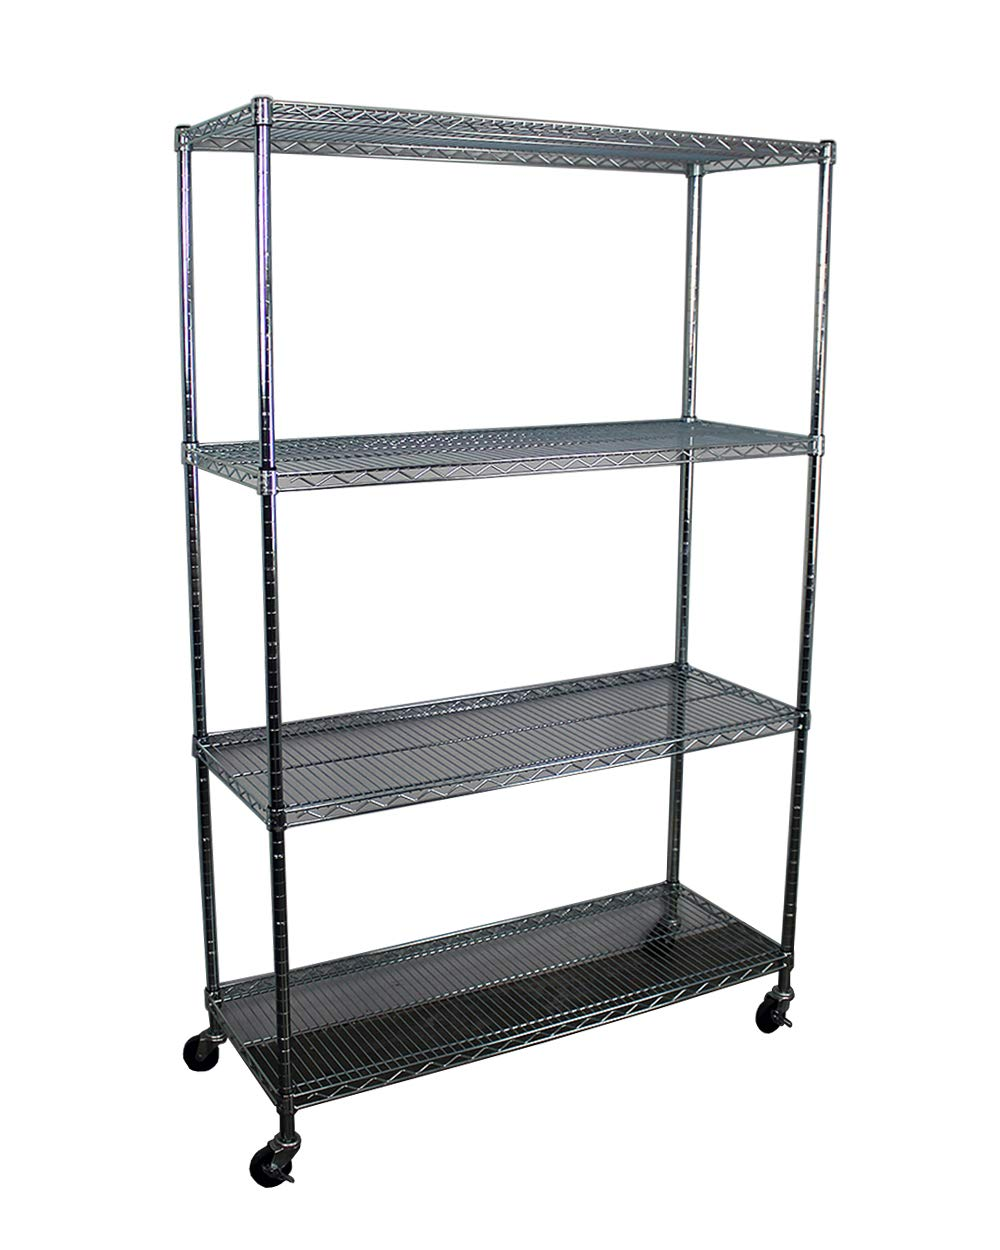 SafeRacks NSF 4-Tier Wire Shelving Rack with Wheels - 18'' x 48'' x 72''